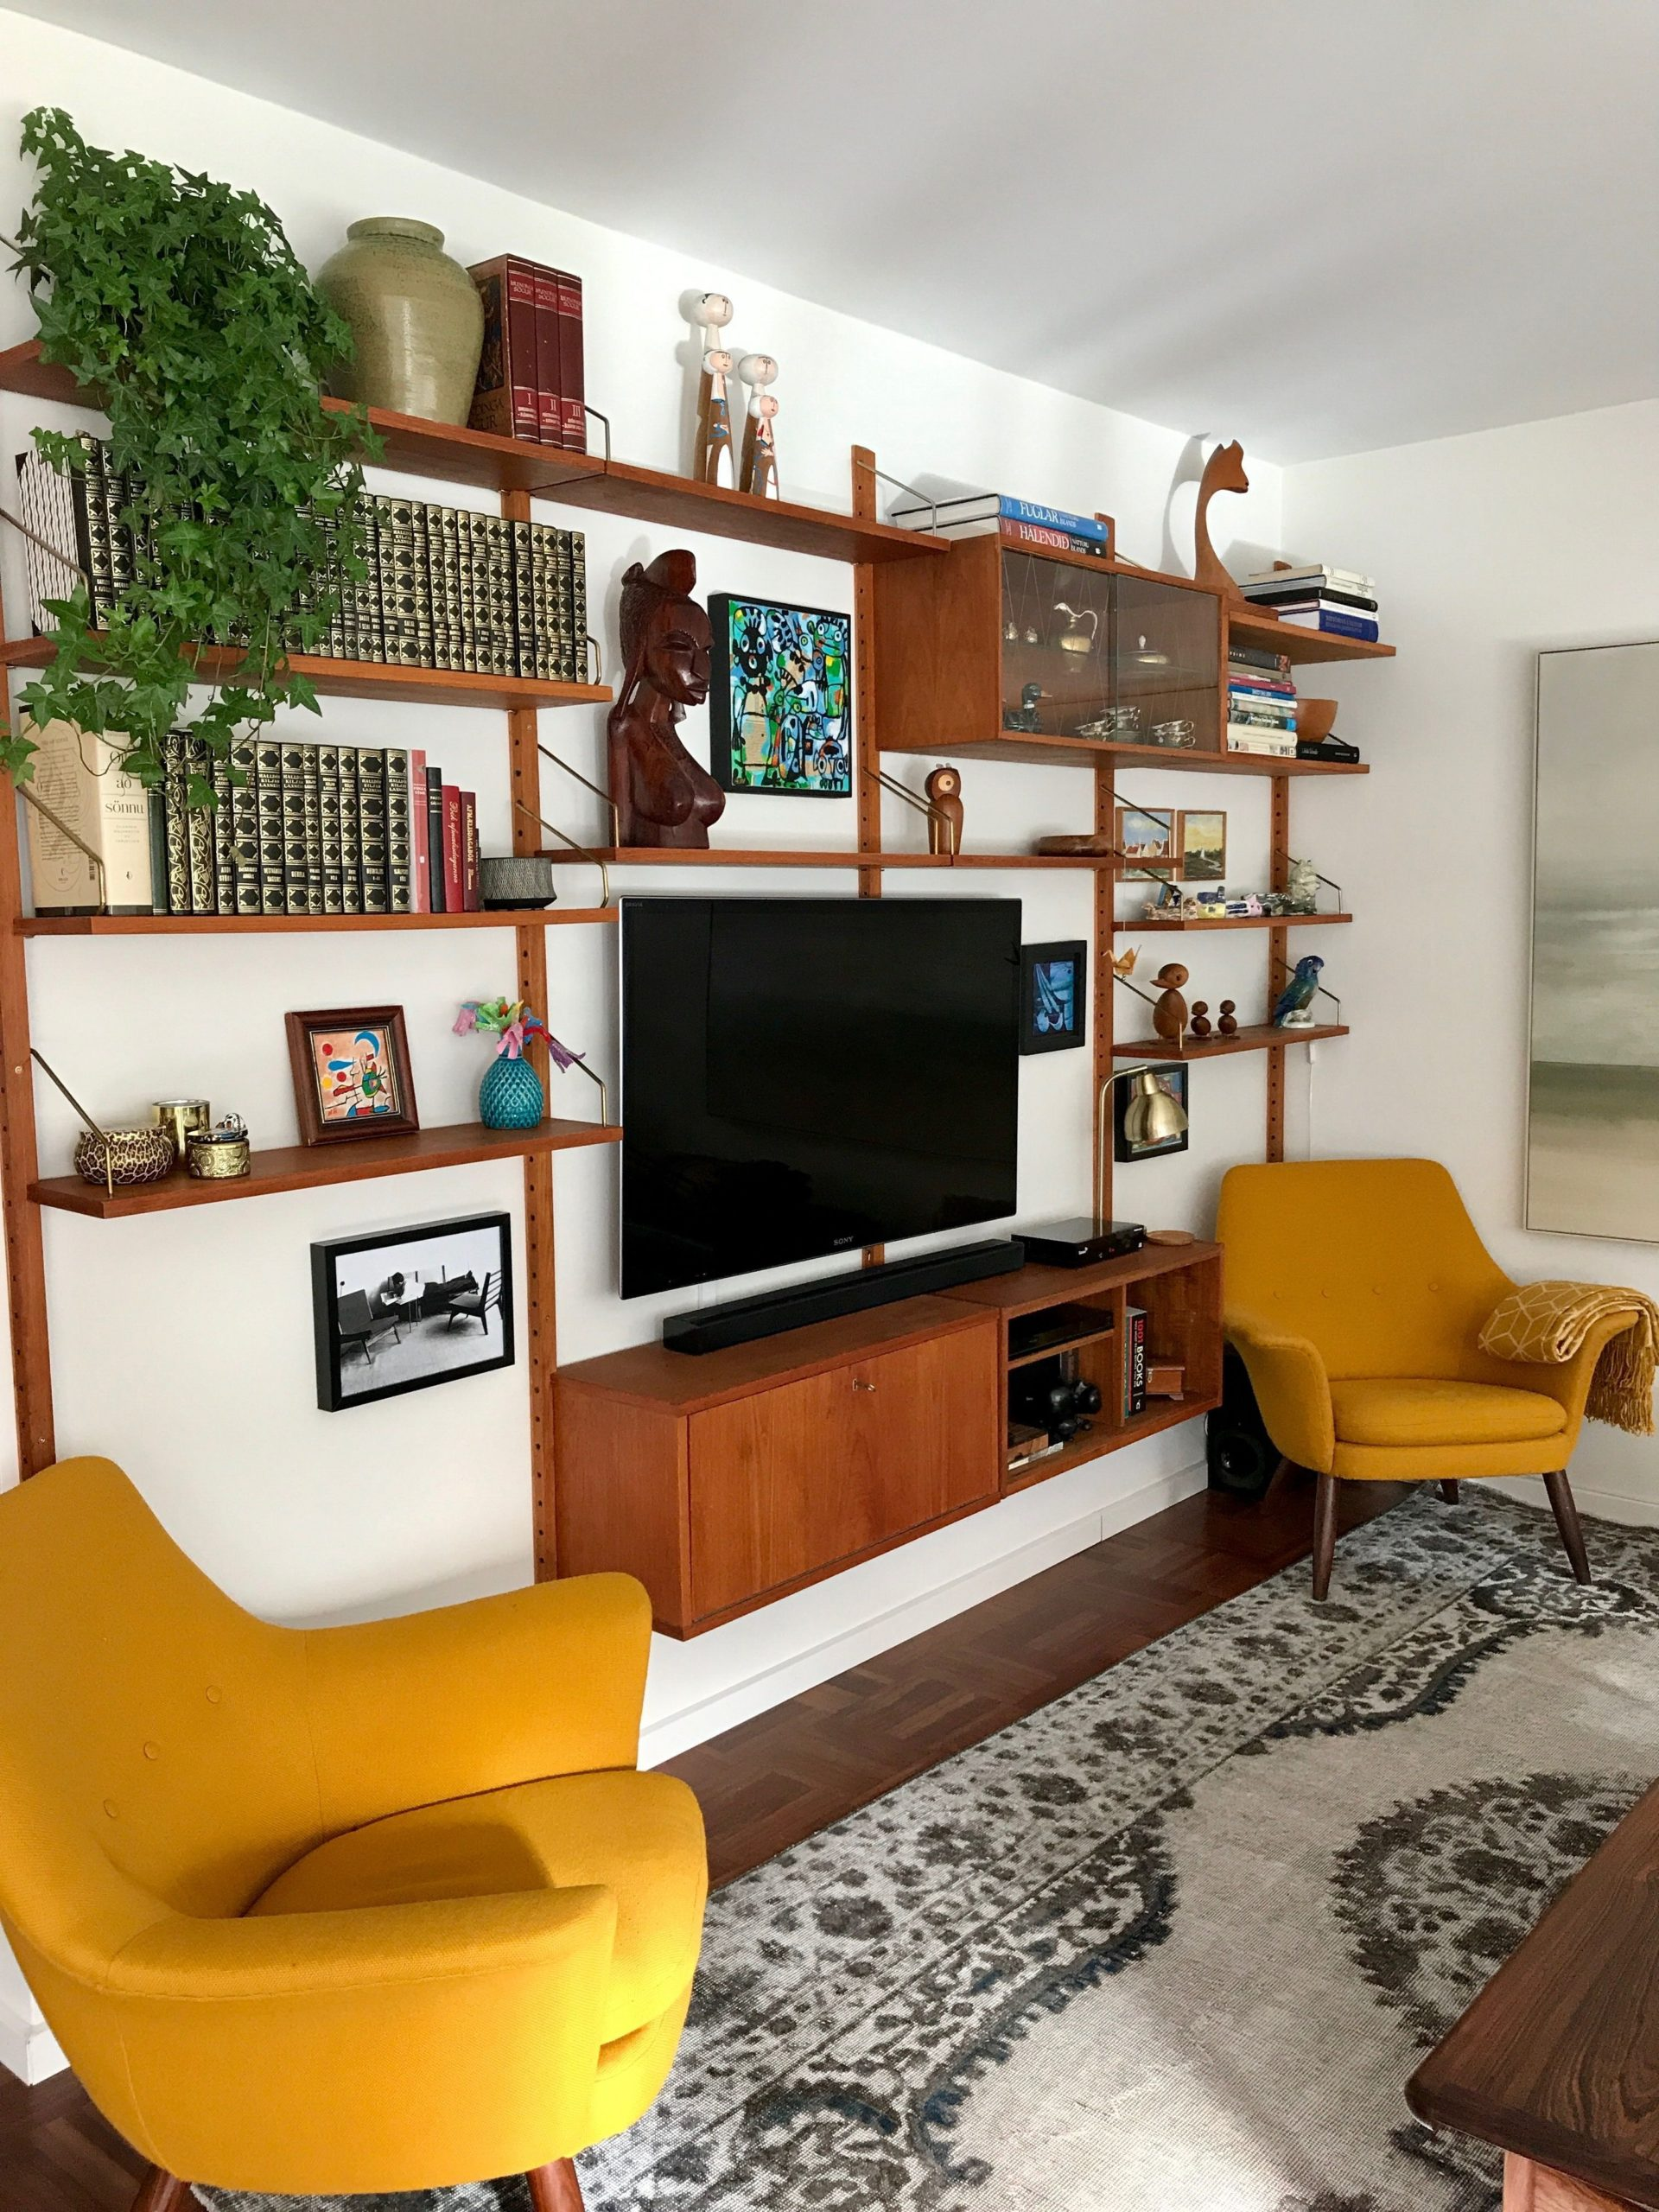 Color in the living room -  Color in the living room  - #color #easyhomedecor #h...